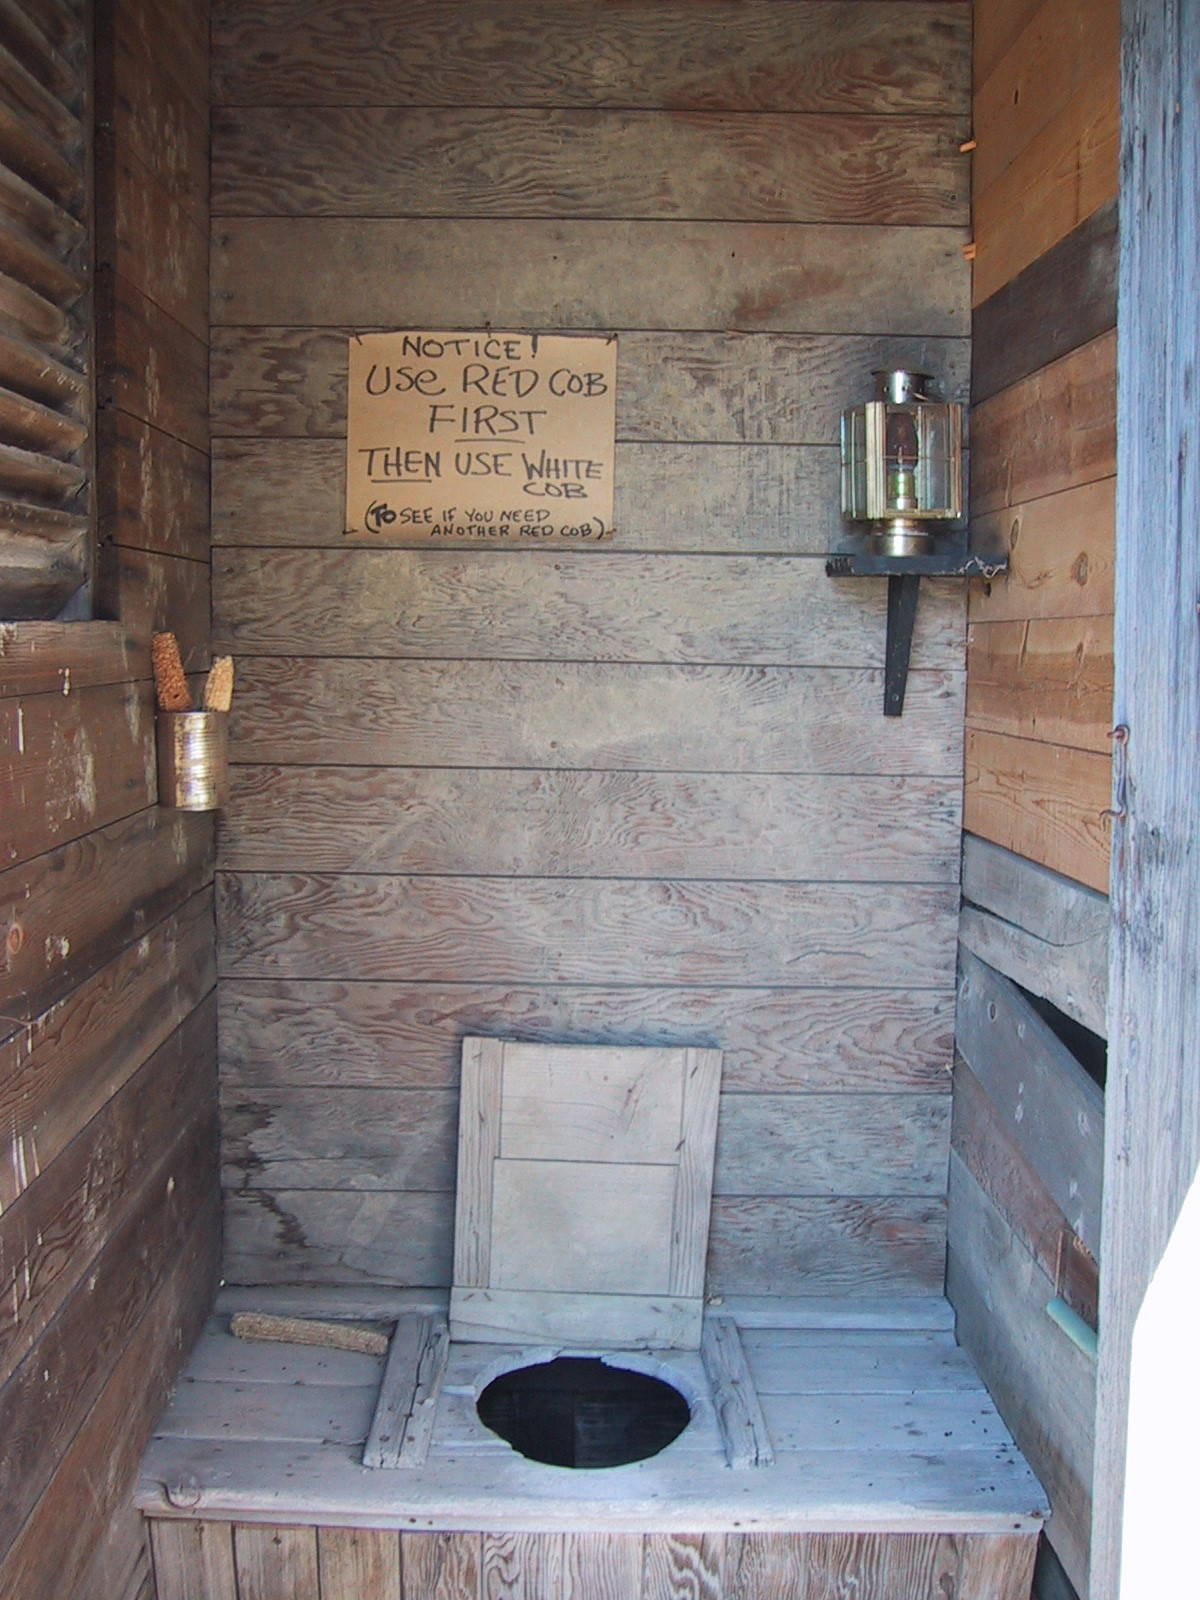 How To Build A Modern-Day Outhouse - Off The Grid News Unique Outhouse Designs Html on unique fishing designs, unique loft designs, unique cottage designs, unique school designs, unique tractor designs, unique dog designs, unique shower designs, unique fish designs, unique warehouse designs, unique chairs designs, unique building designs, unique washroom designs, unique apartment designs, unique owl designs, unique workshop designs, unique boathouse designs, unique root cellar designs, unique room designs, unique bathroom designs, unique bear designs,